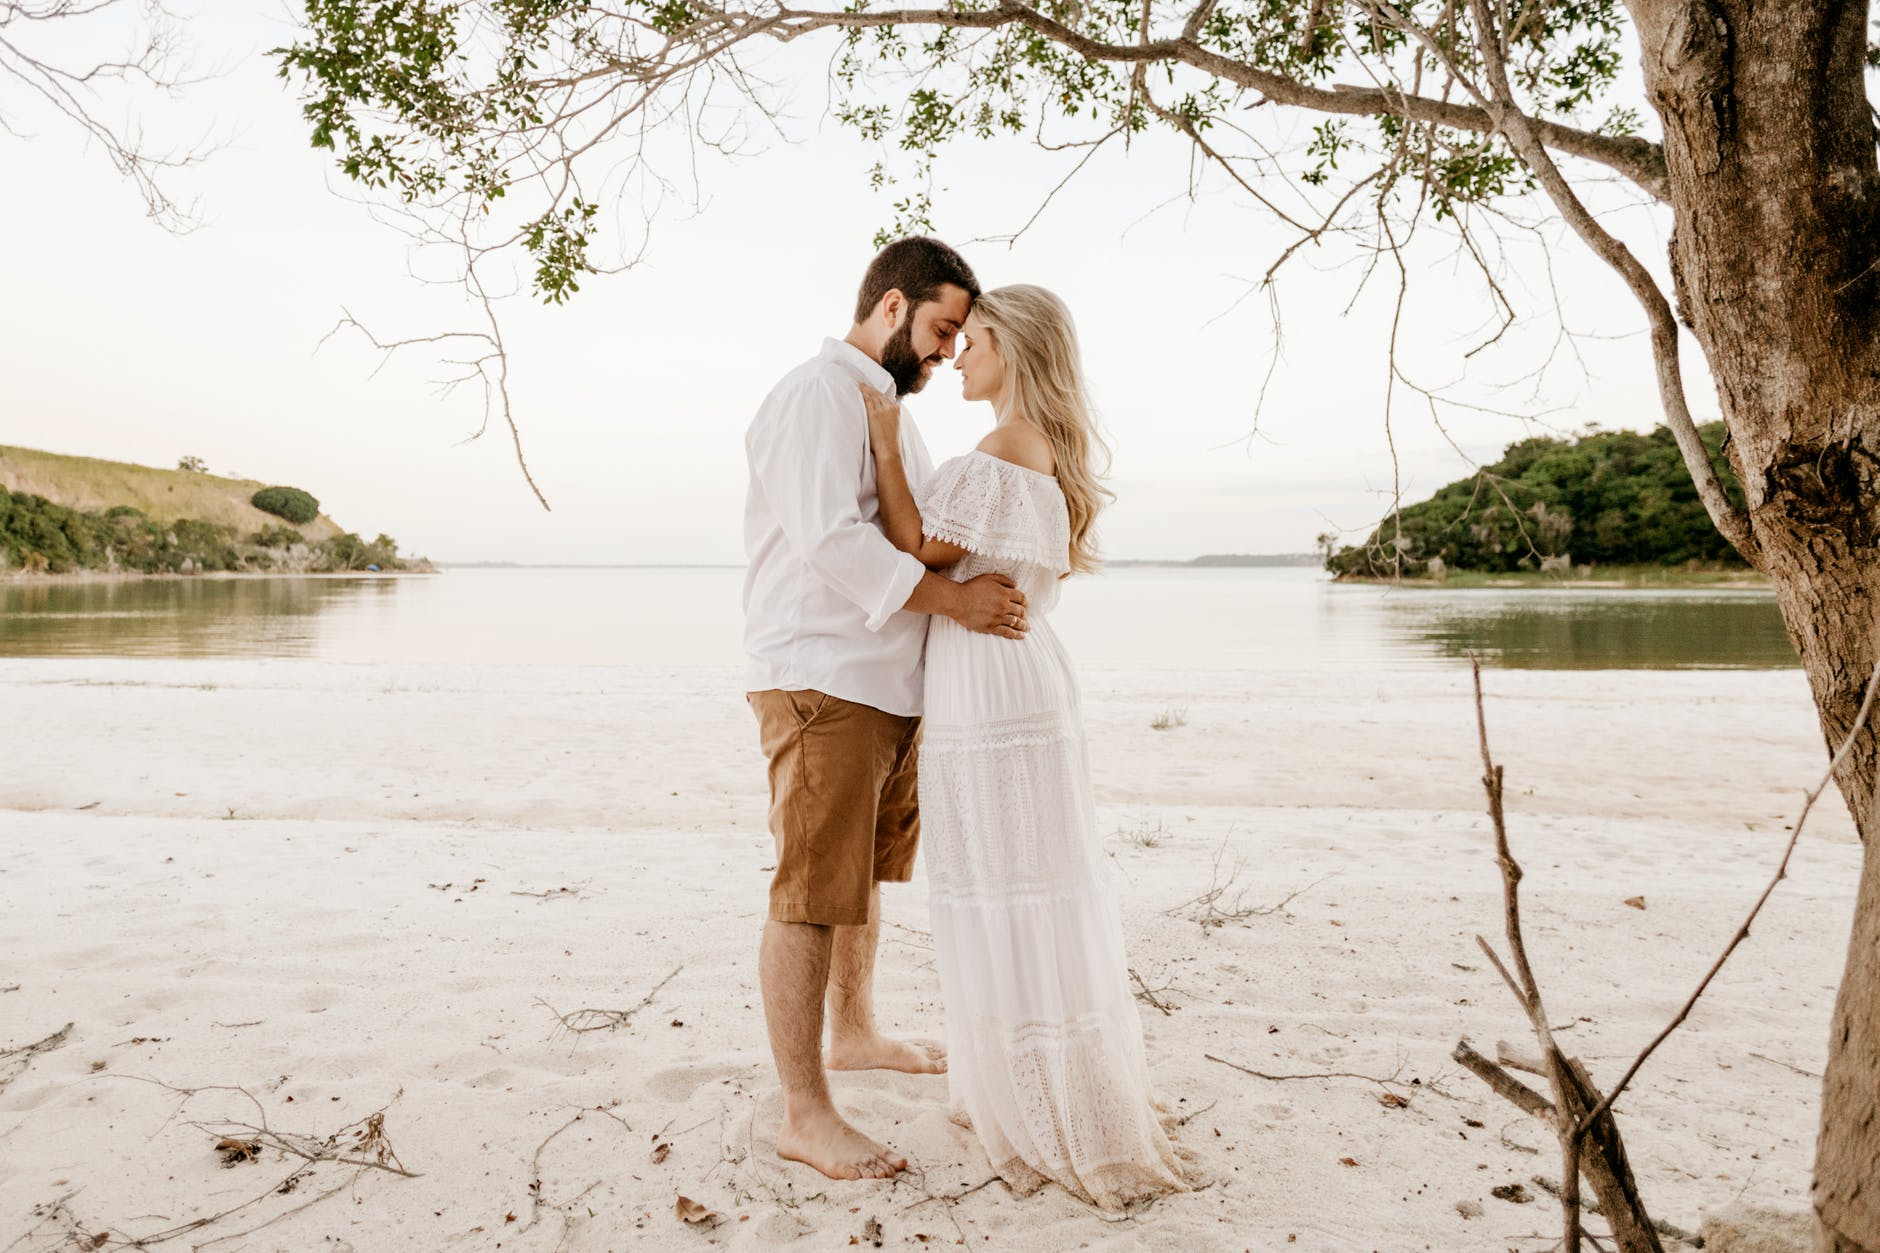 elegant couple embracing on sandy sea shore during summer trip